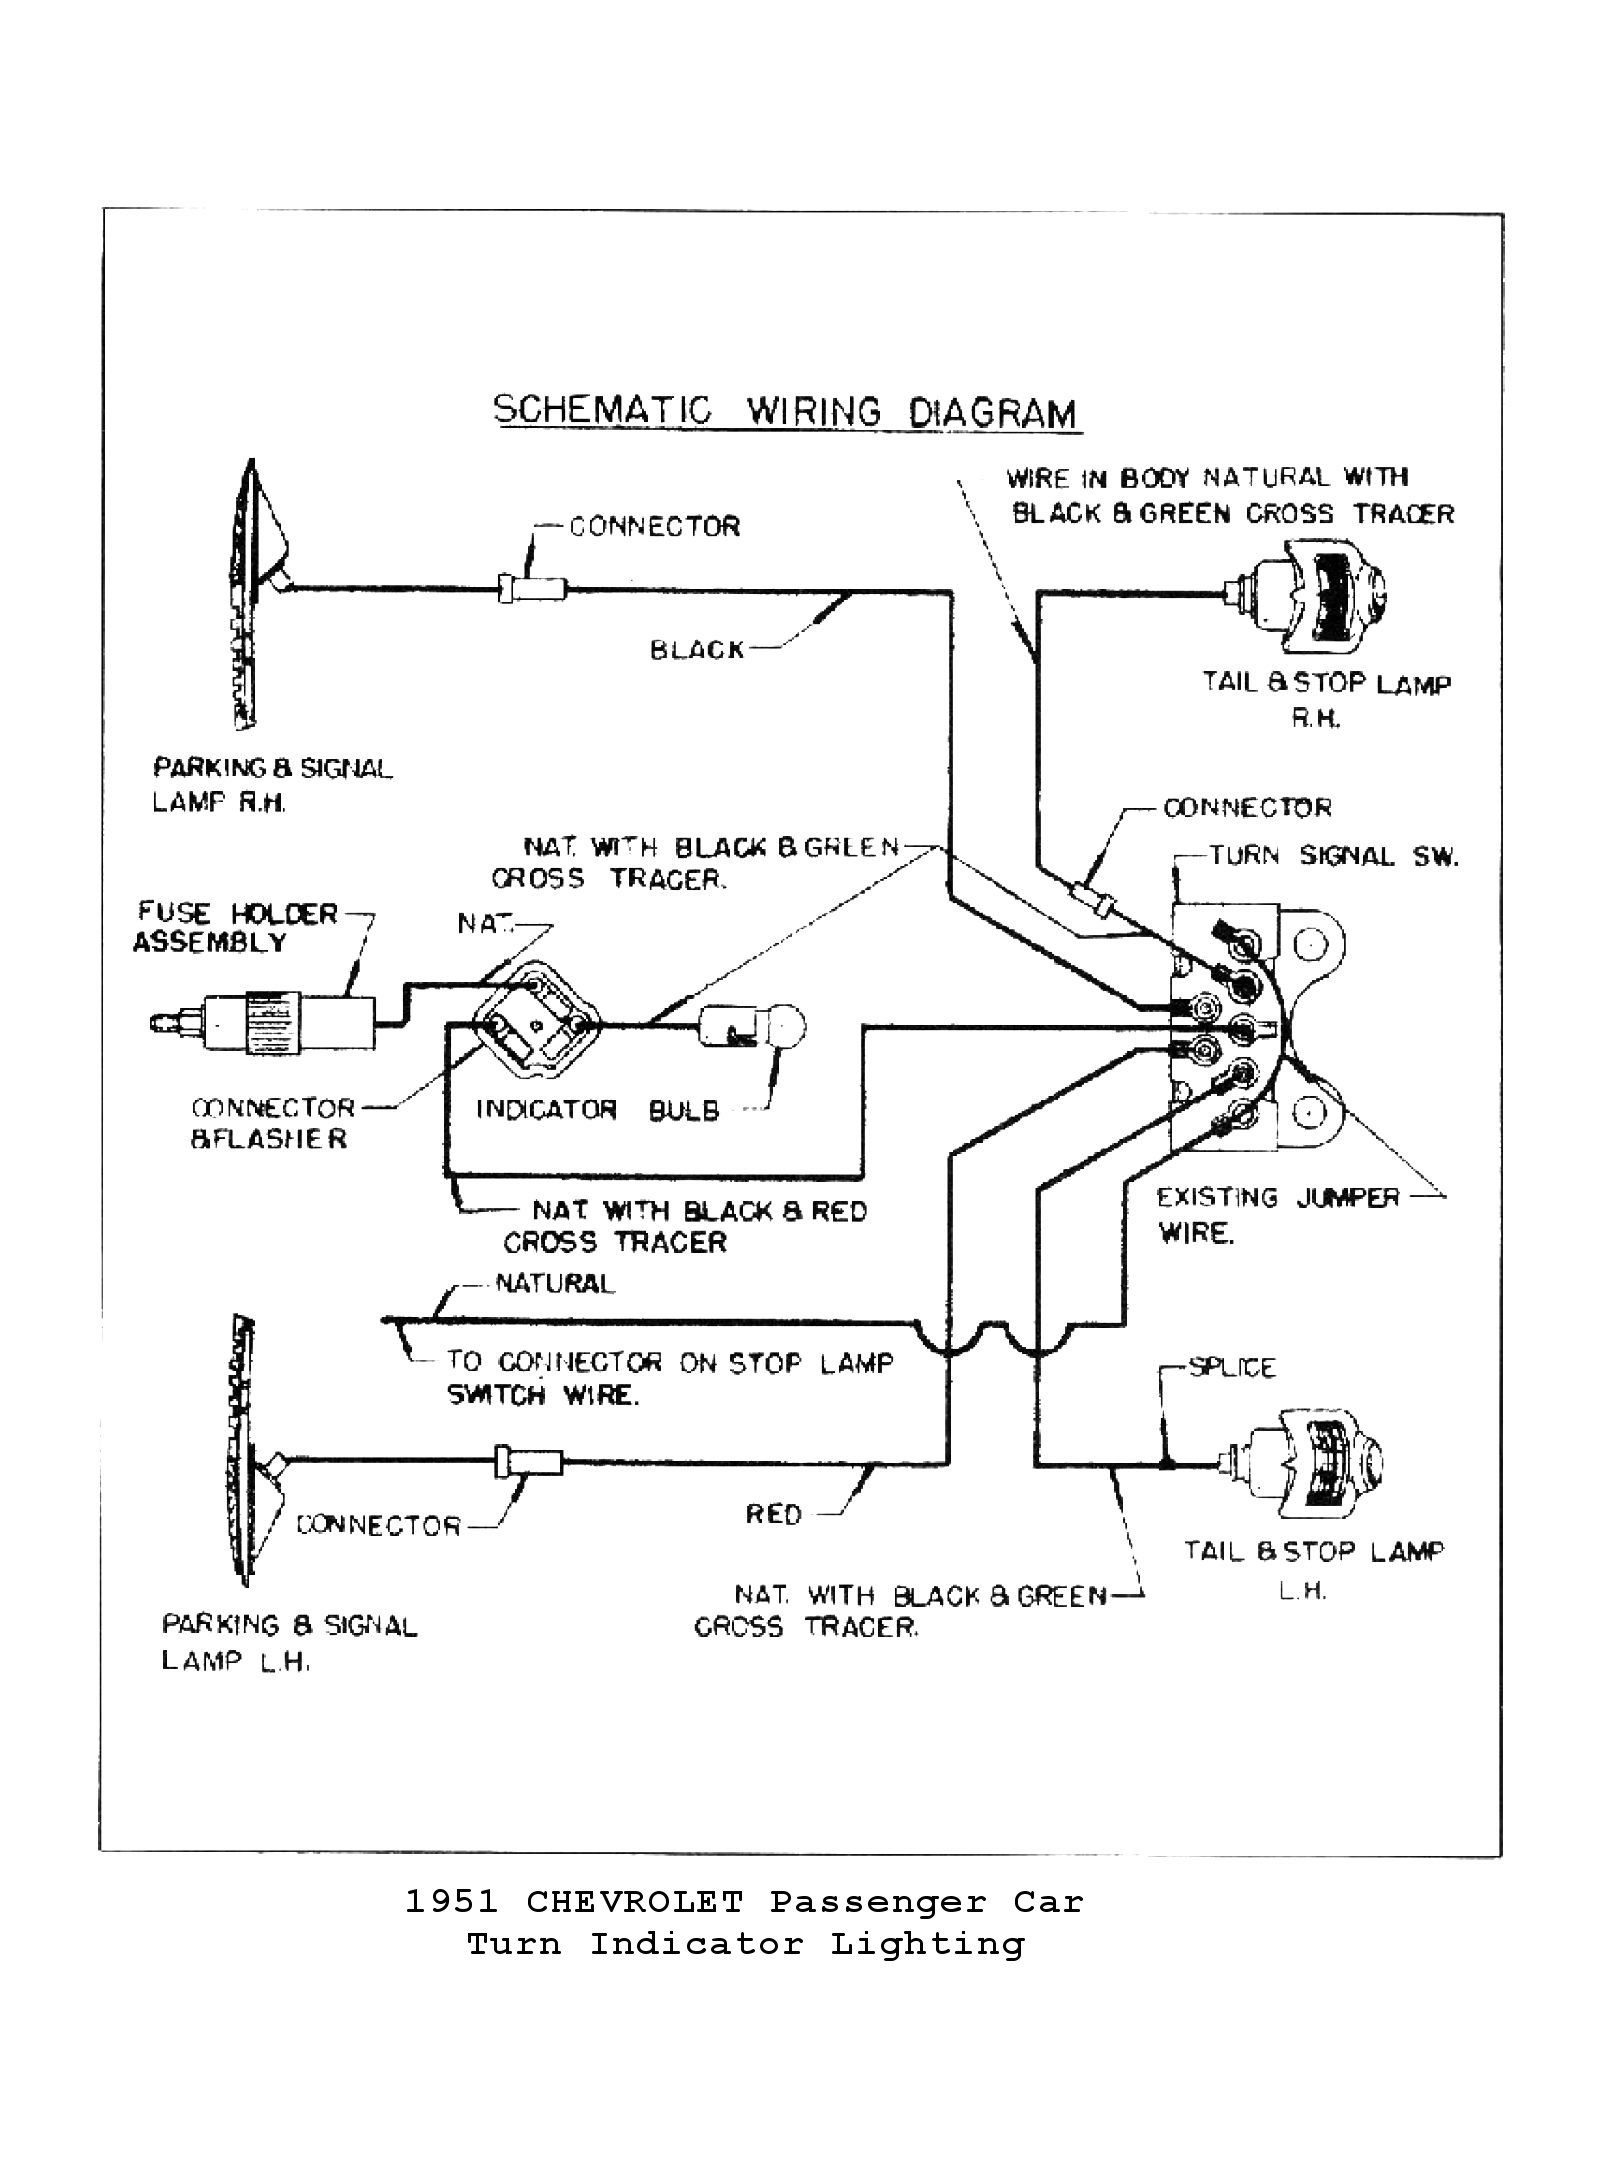 1948 Packard Wiring Diagram Pictures Mack Air Ke Chevy Schematics Rh Mychampagnedaze Com 1946 Clipper Mopar Diagrams